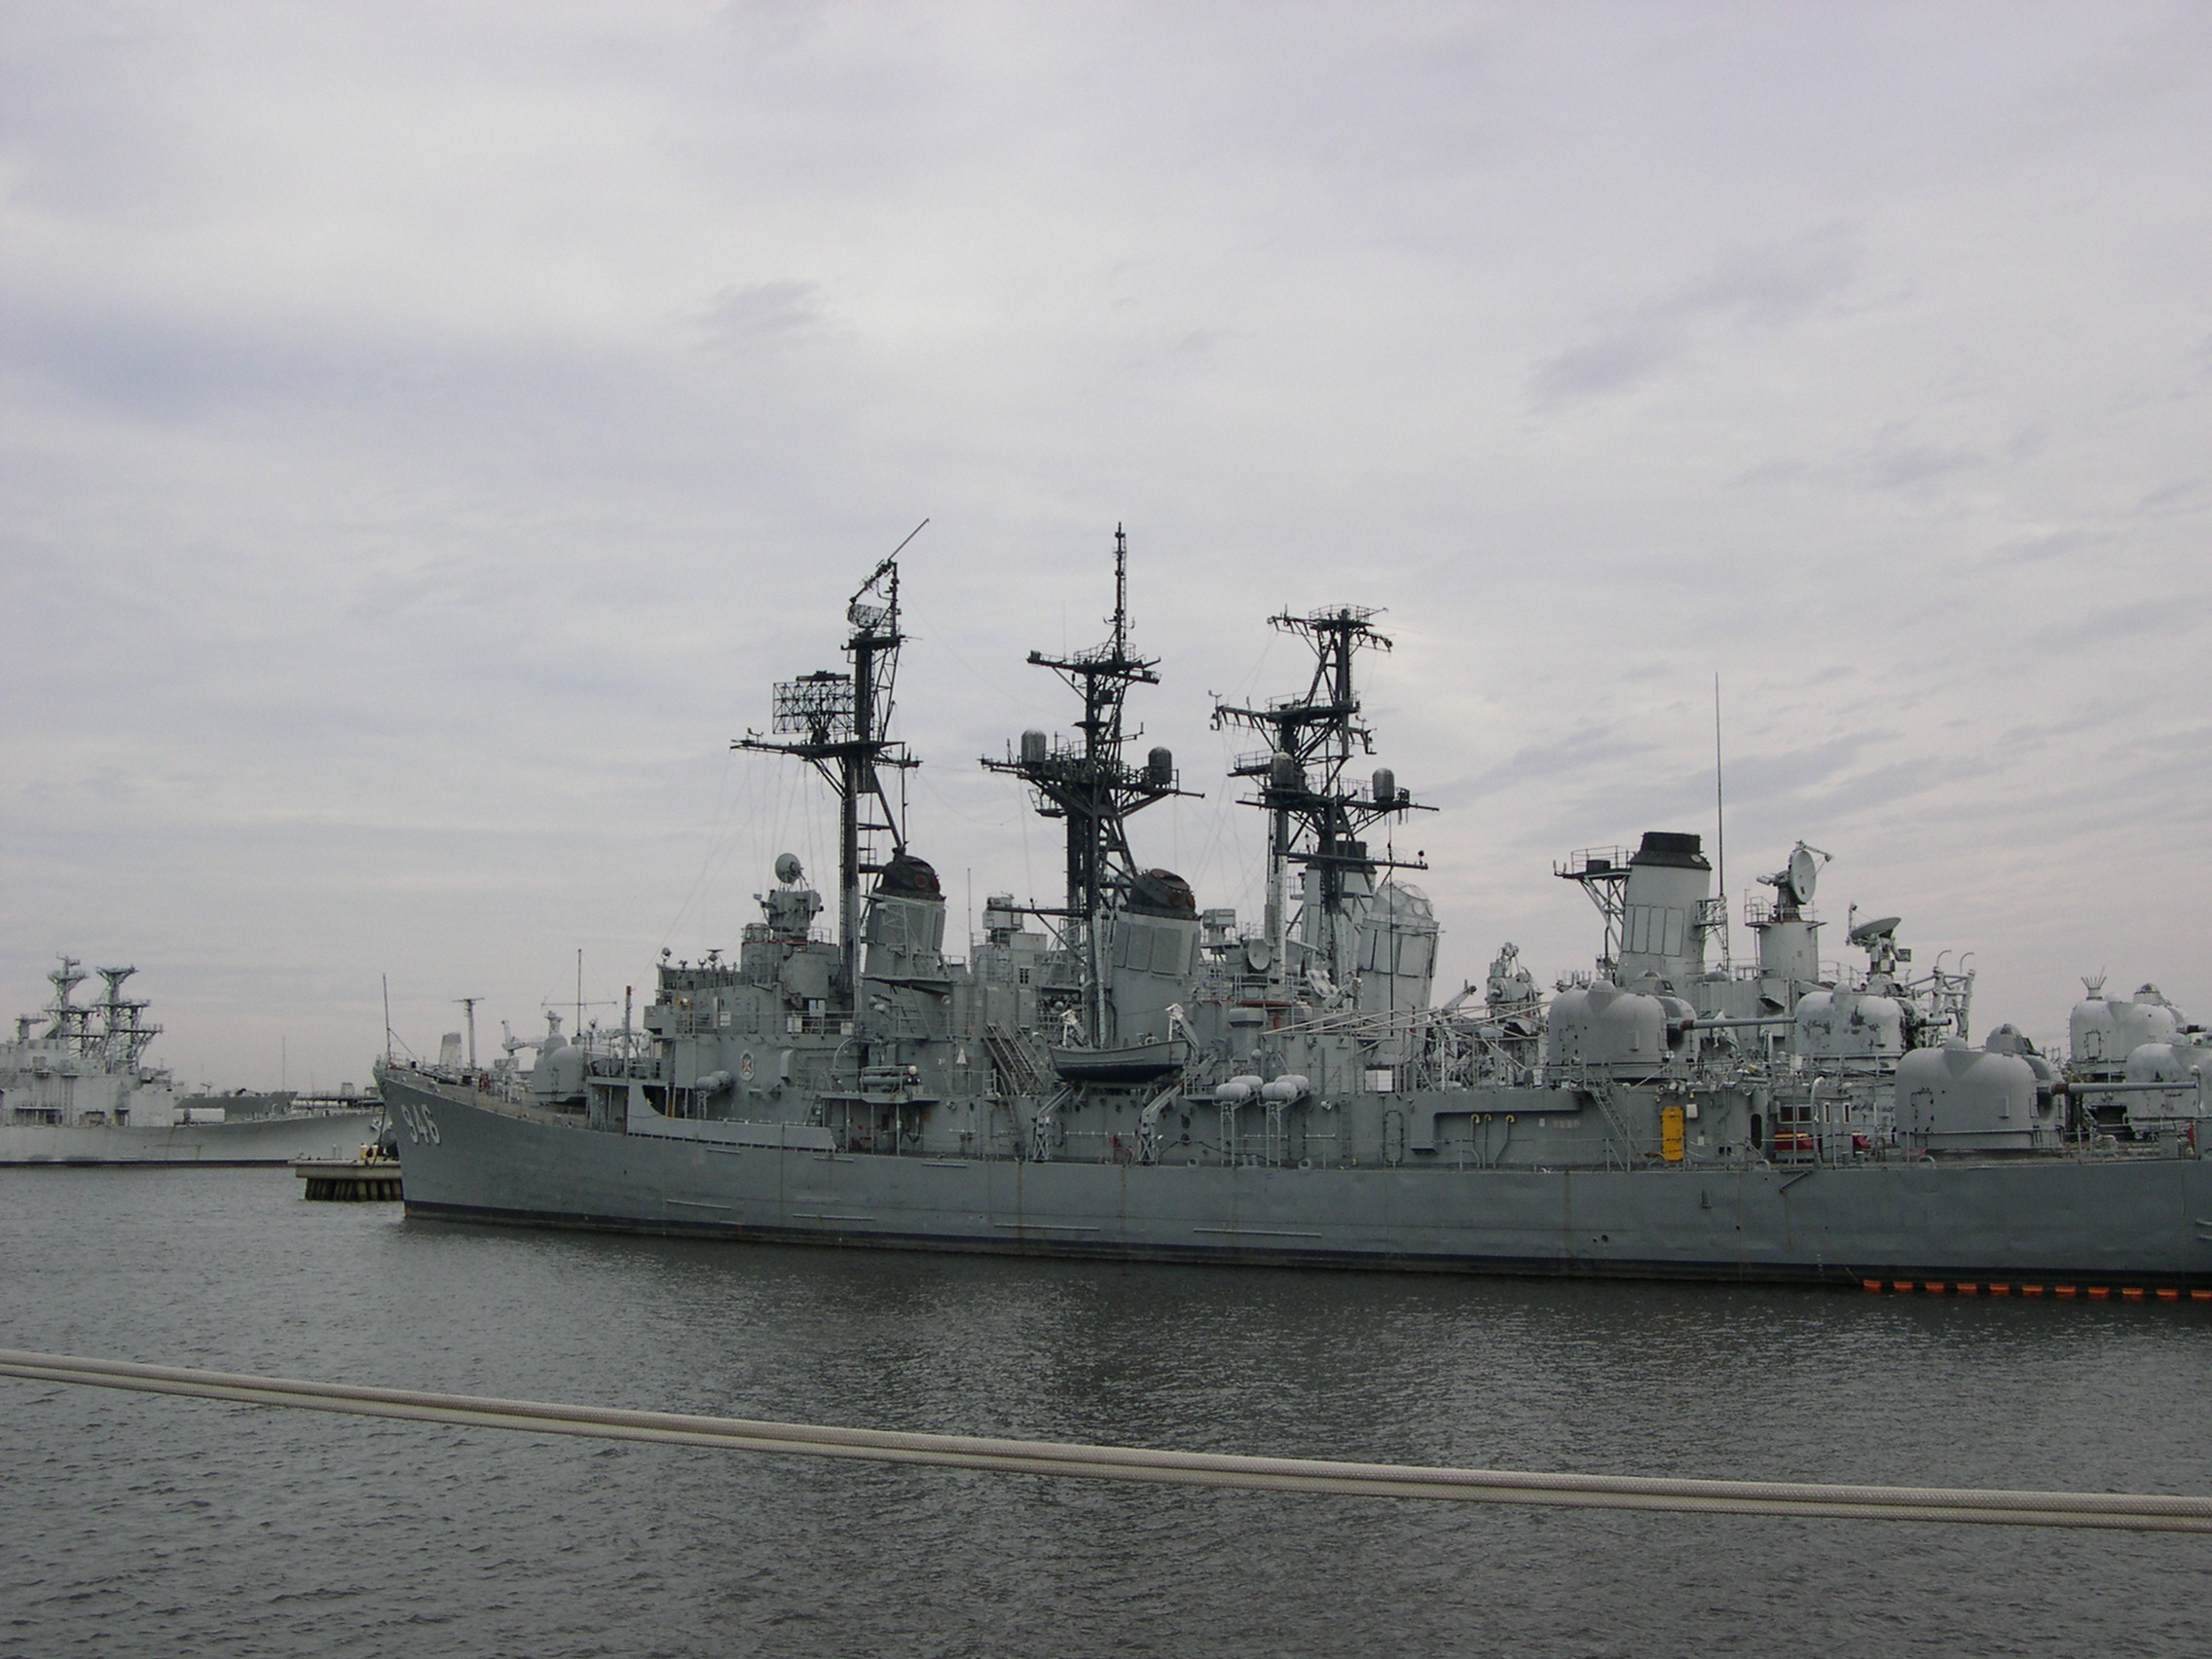 USS Forrest Sherman, USS Edson, USS Adams - May 2007